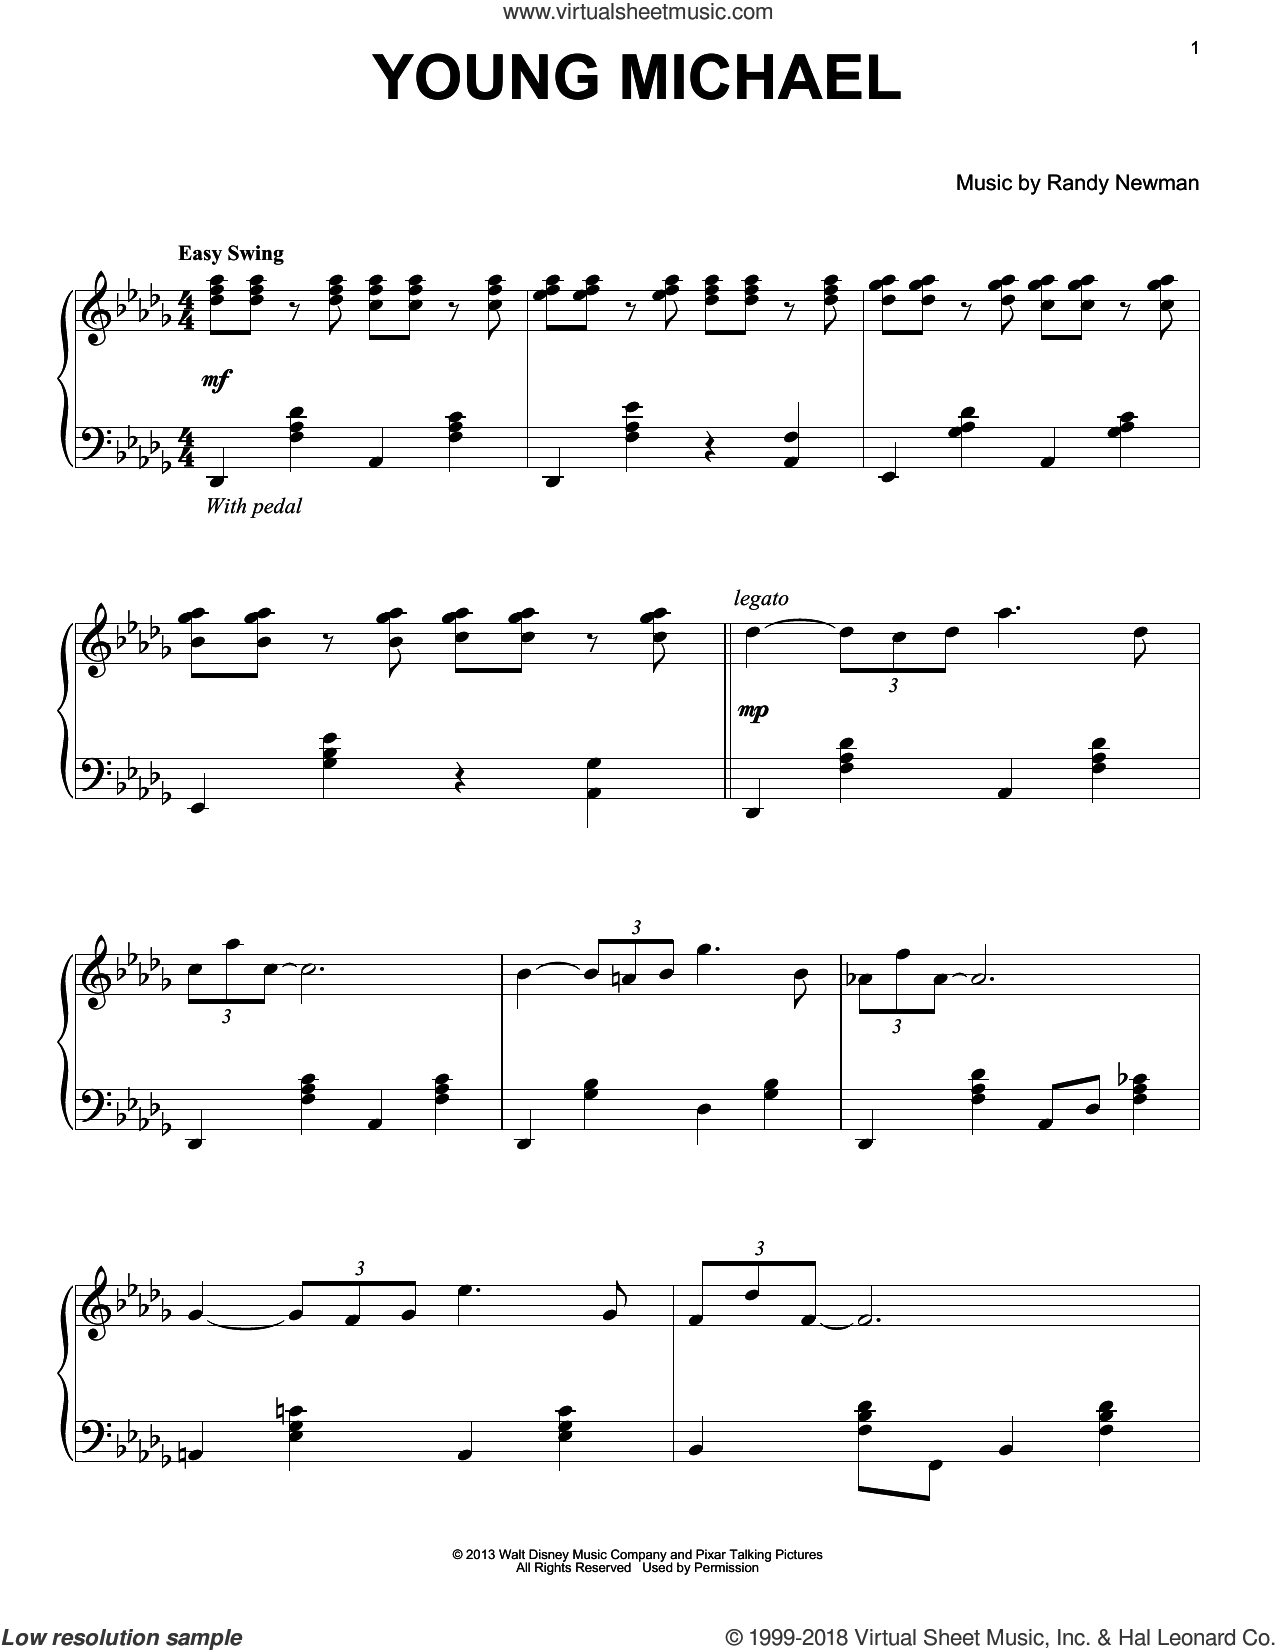 Young Michael sheet music for piano solo by Randy Newman, Monsters University (Movie) and Monsters, Inc. (Movie), intermediate skill level